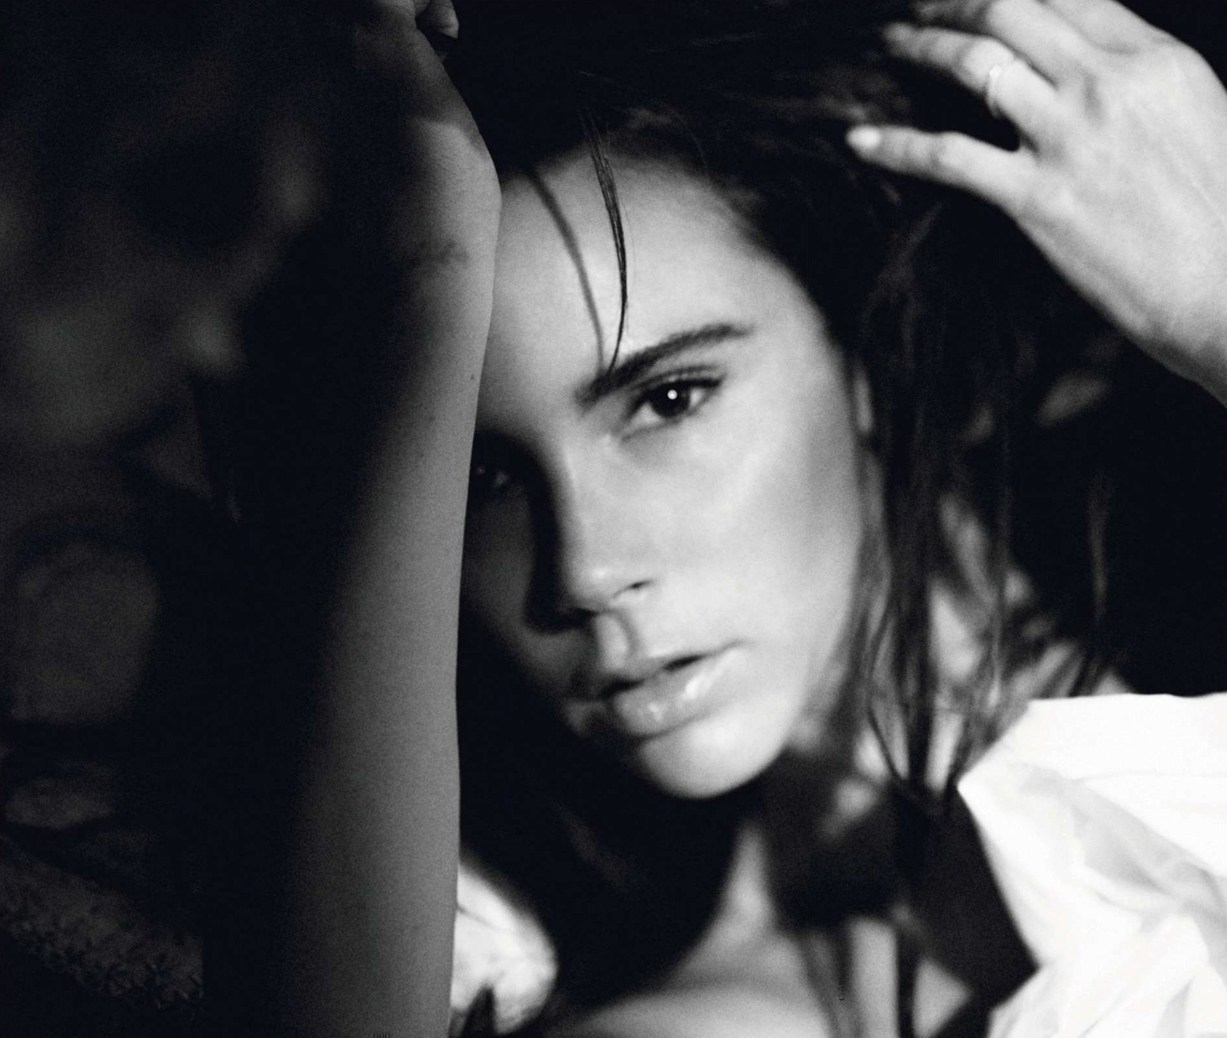 Виктория Бекхэм / Victoria Beckham - Queen Victoria by David Sims in Vogue Paris december/january 2013/14